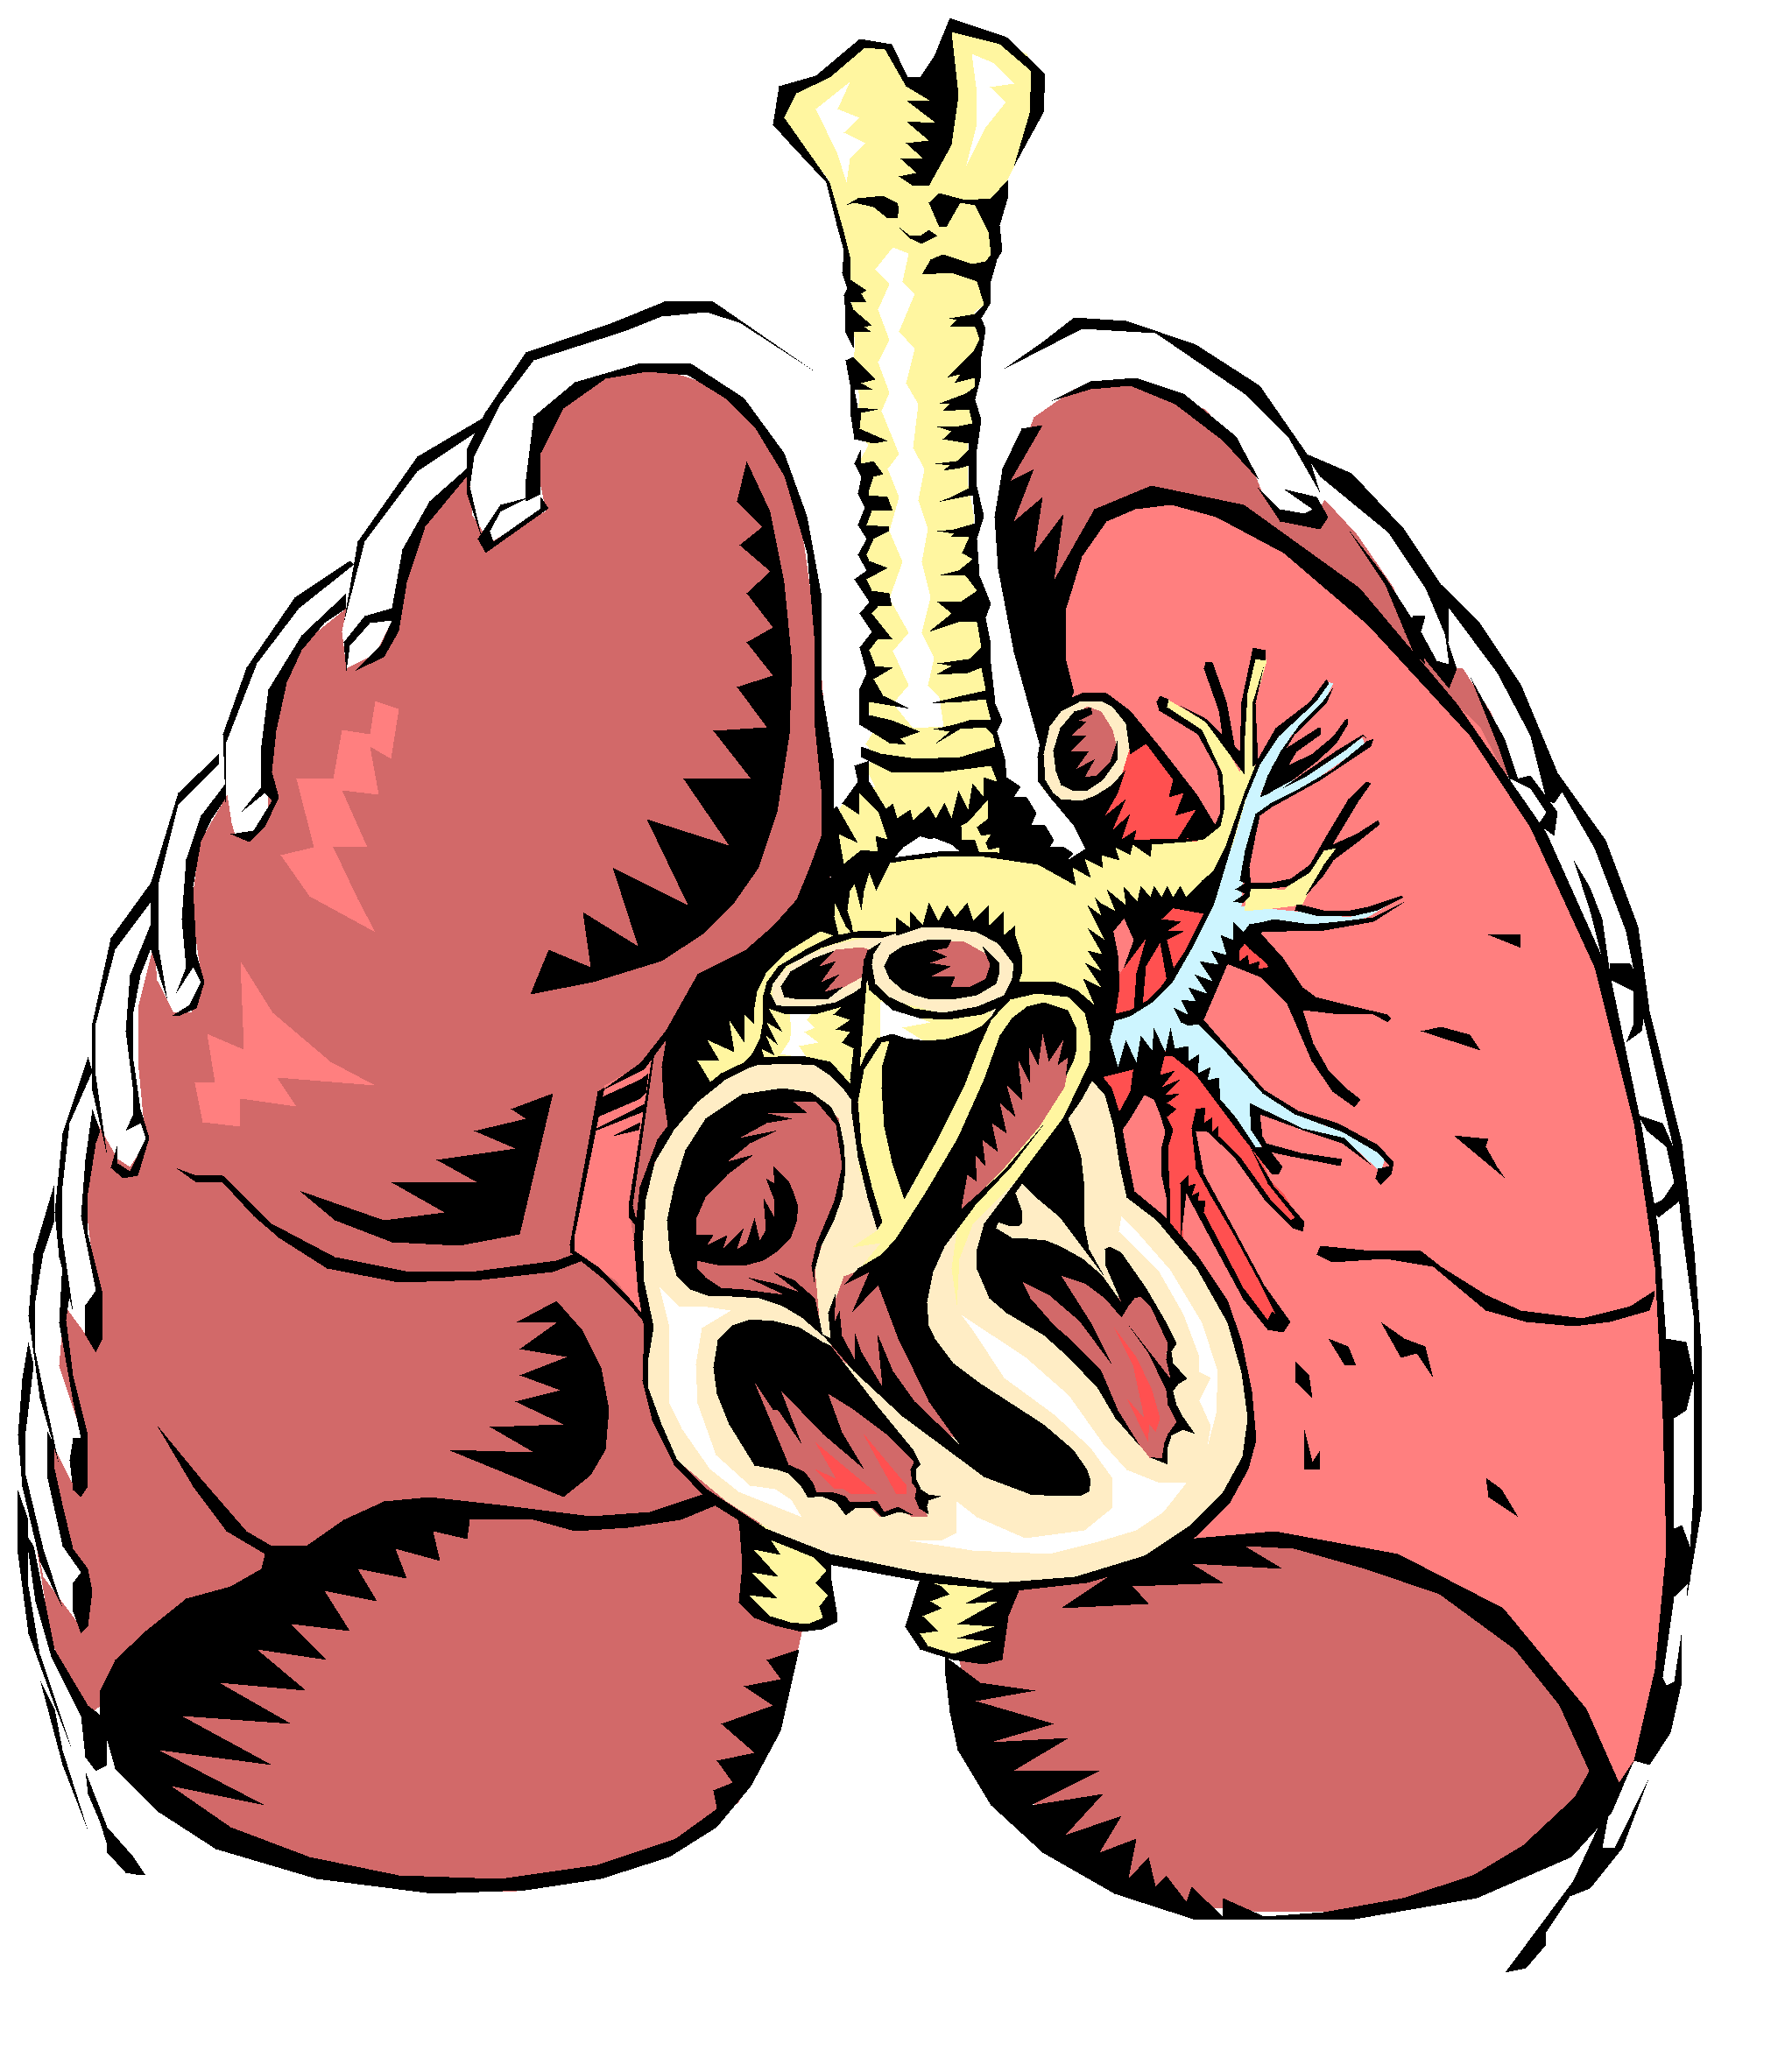 Respiratory System Cartoon Pictures - ClipArt Best